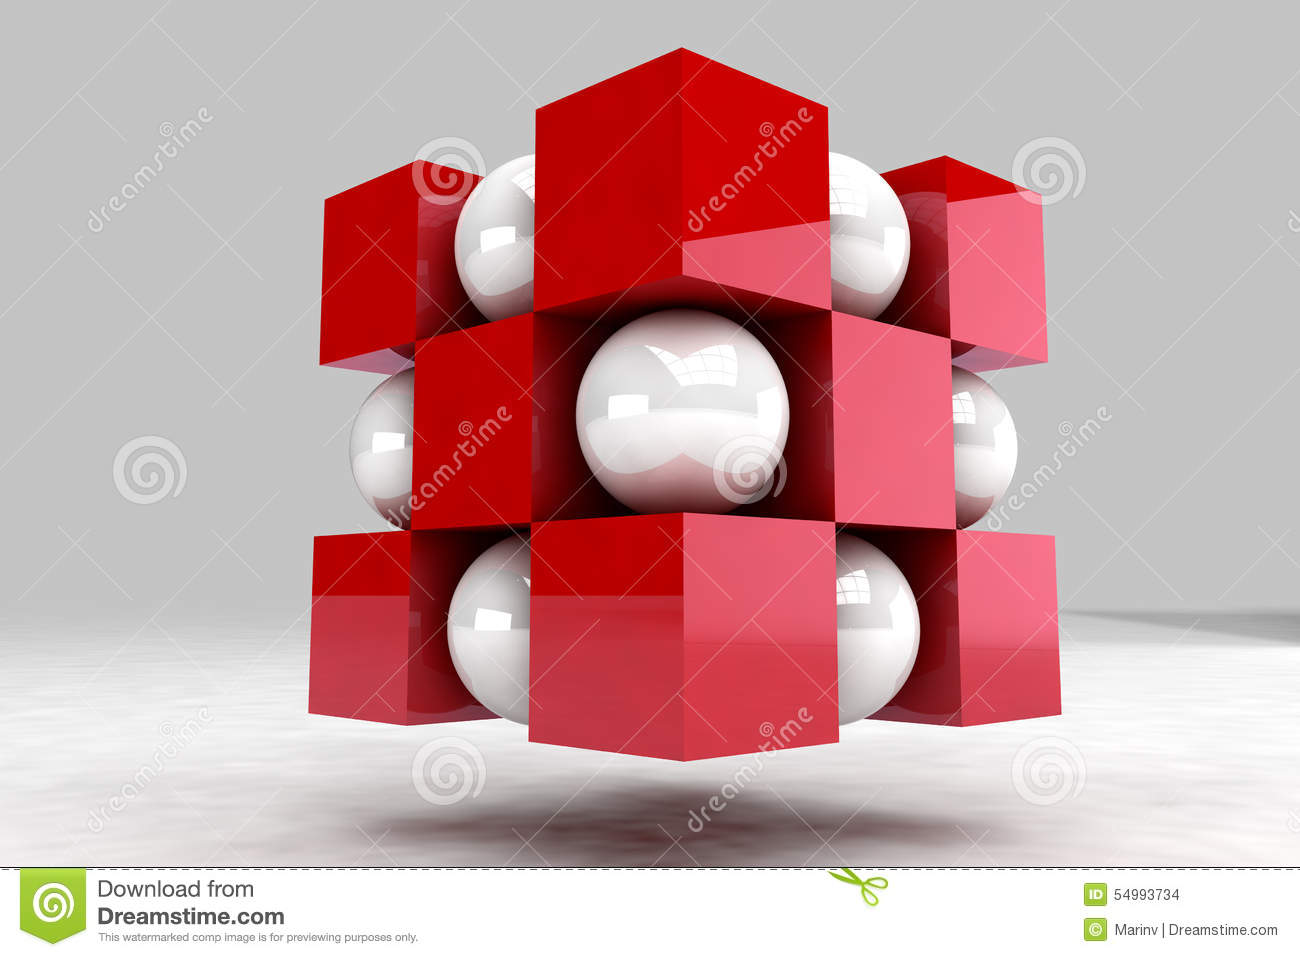 Geometric Body Made Of White Balls And Red Cubes Stock.